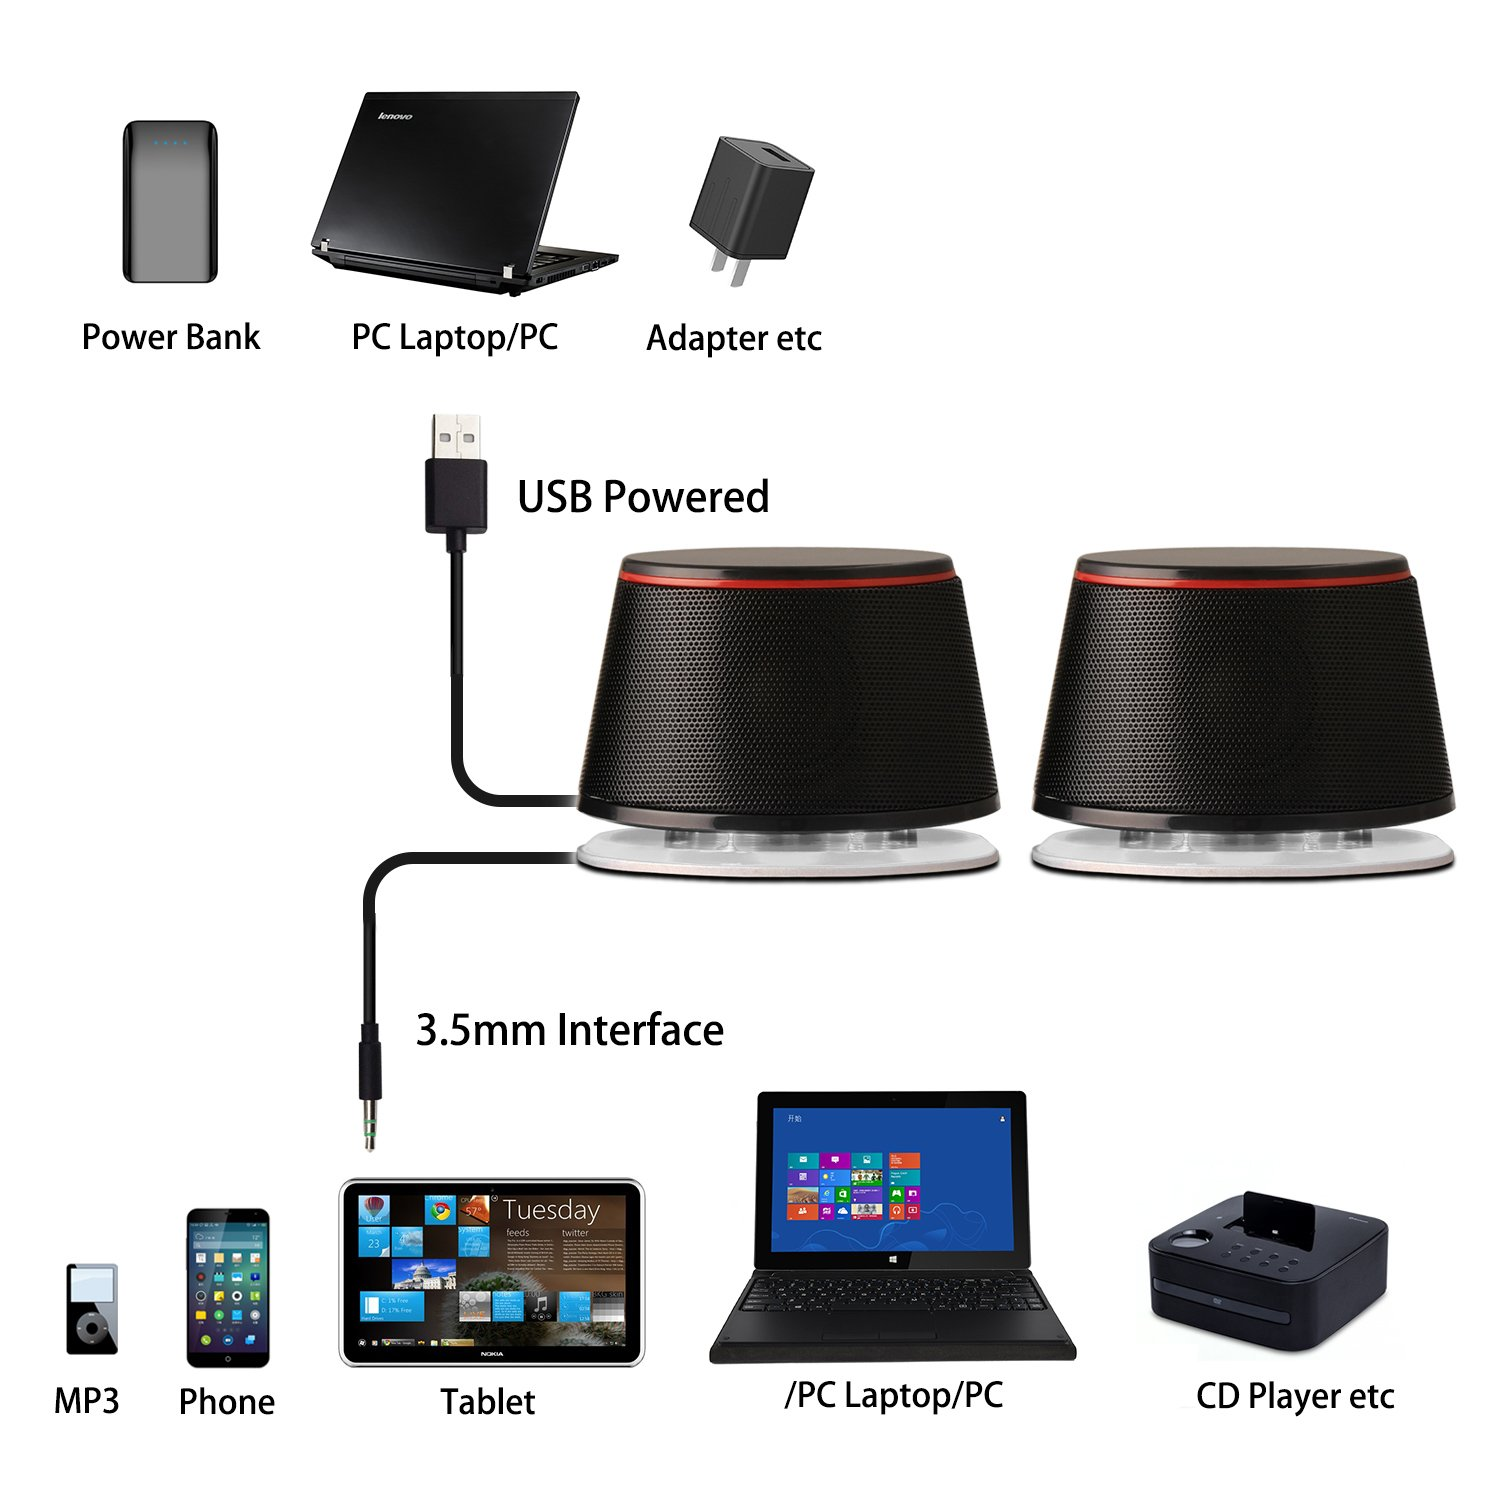 Sanyun SW102 Computer Speakers, Stereo 2.0 Channel Wired USB Powered PC Laptop Speakers, 3.5mm Aux Blue LED Small Desktop Speaker, Black by Sanyun (Image #4)